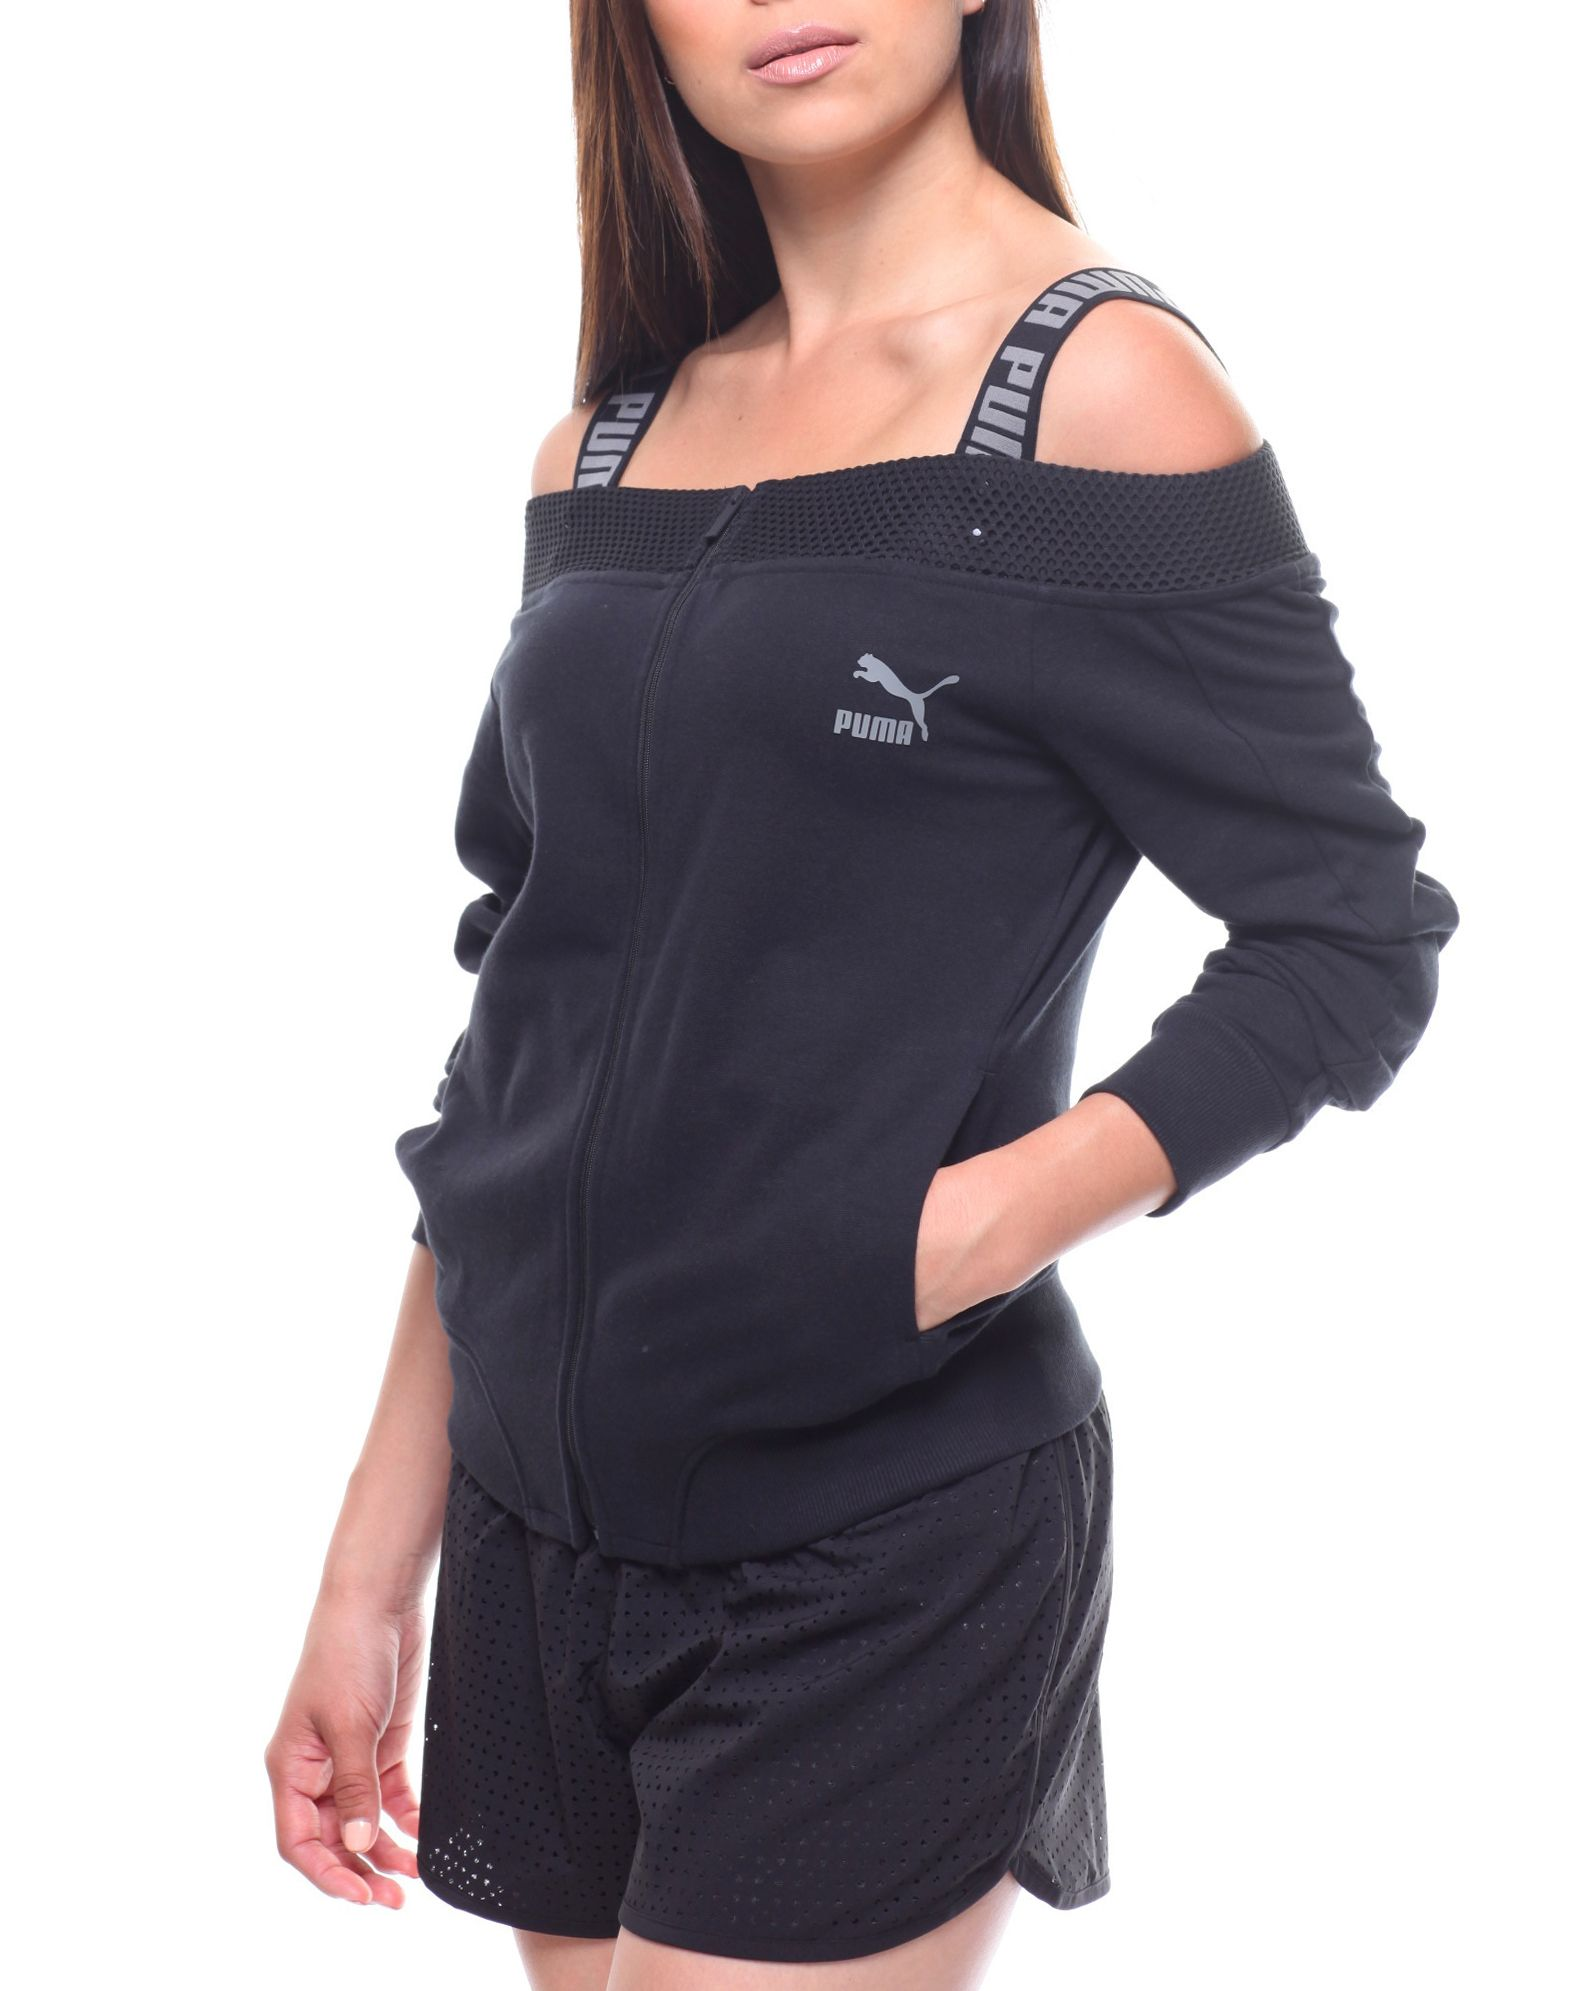 Off The Shoulder T7 Jacket Women S Outerwear From Puma Find Puma Fashion More At Drjays Com Outerwear Women Clothes Fashion [ 1991 x 1593 Pixel ]